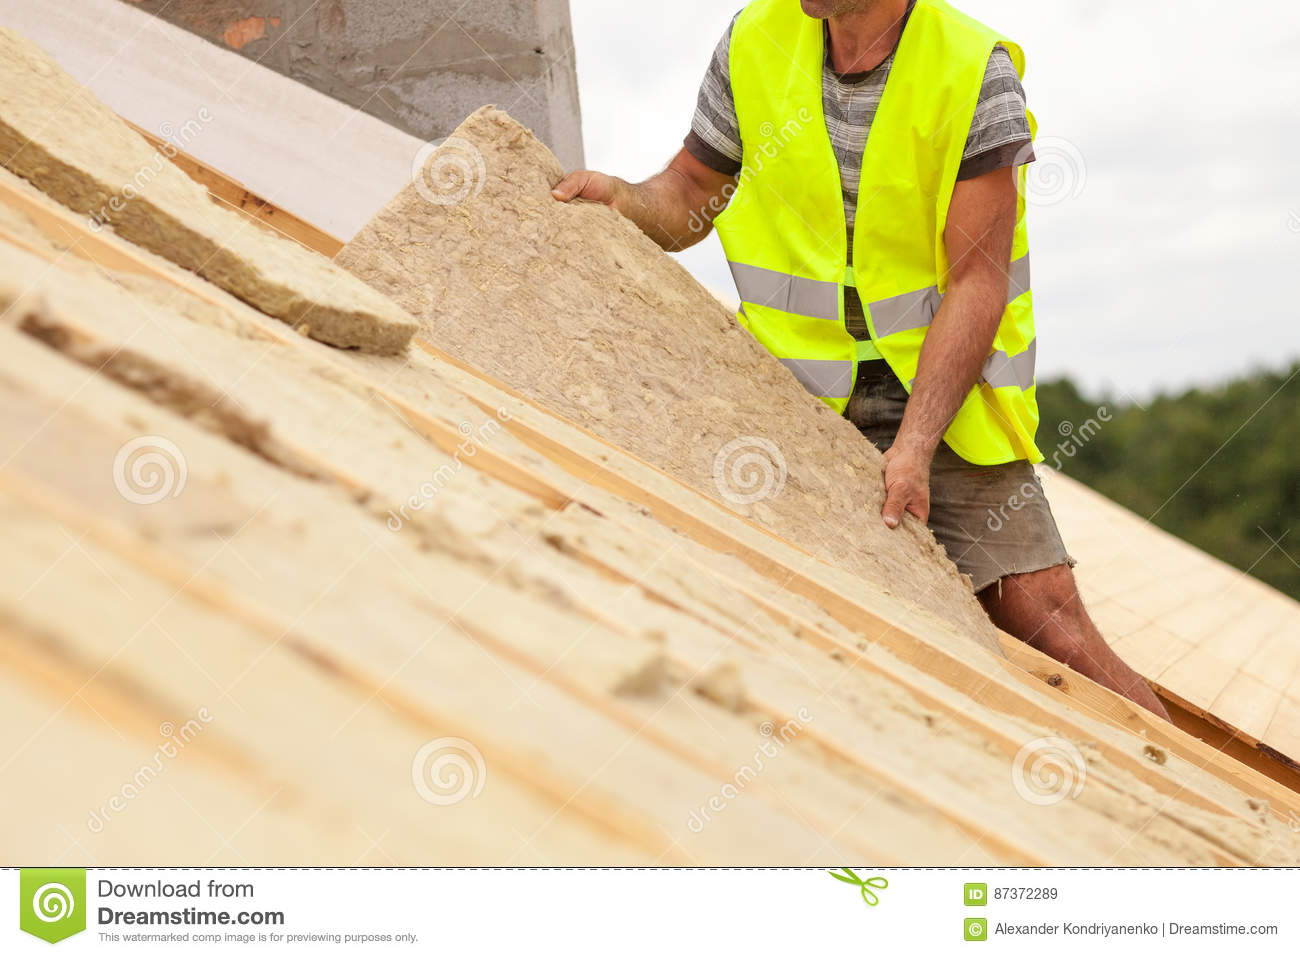 Roofer builder worker installing roof insulation material on new house under construction.